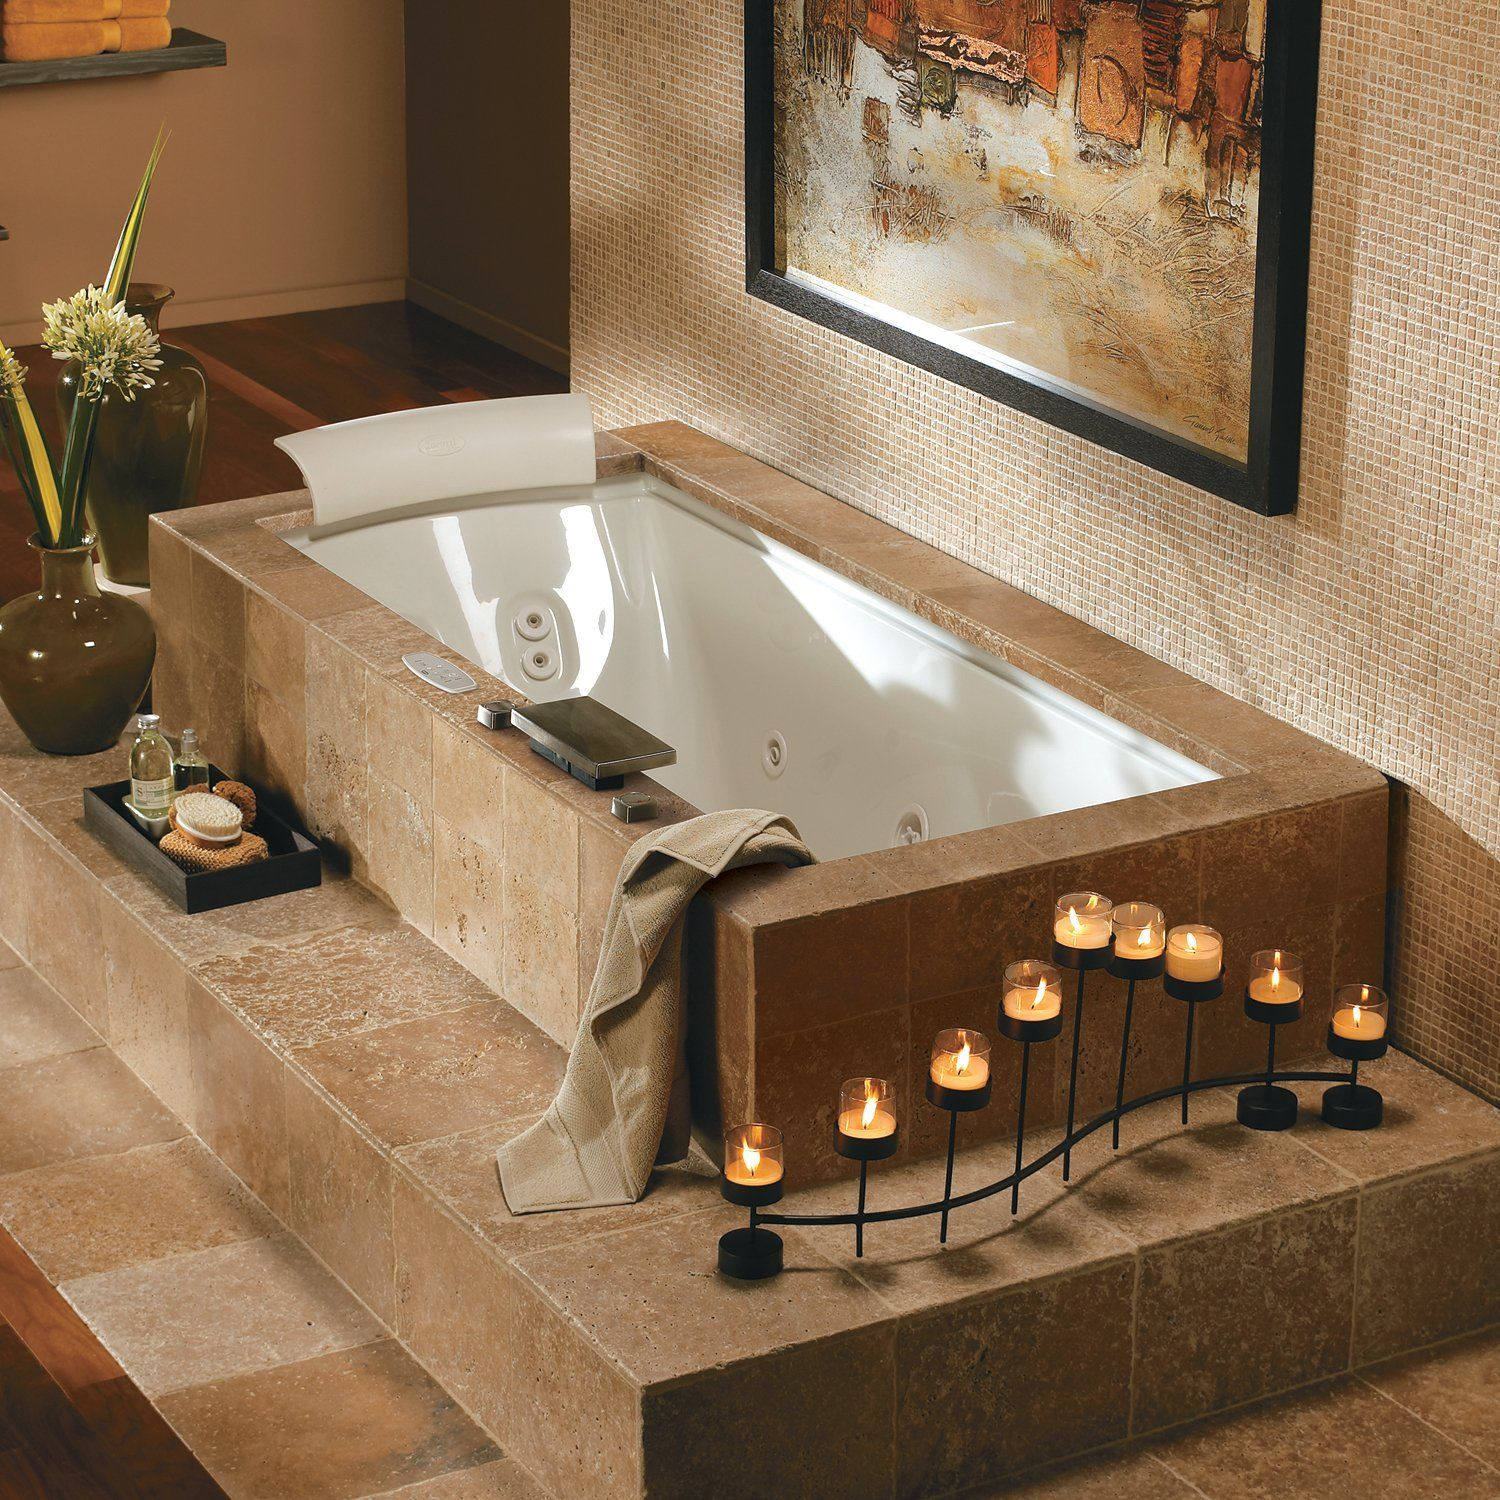 Bathroom Design Jacuzzi jacuzzi whirlpool fuz7236w fuzion undermount drop-in tub at atg